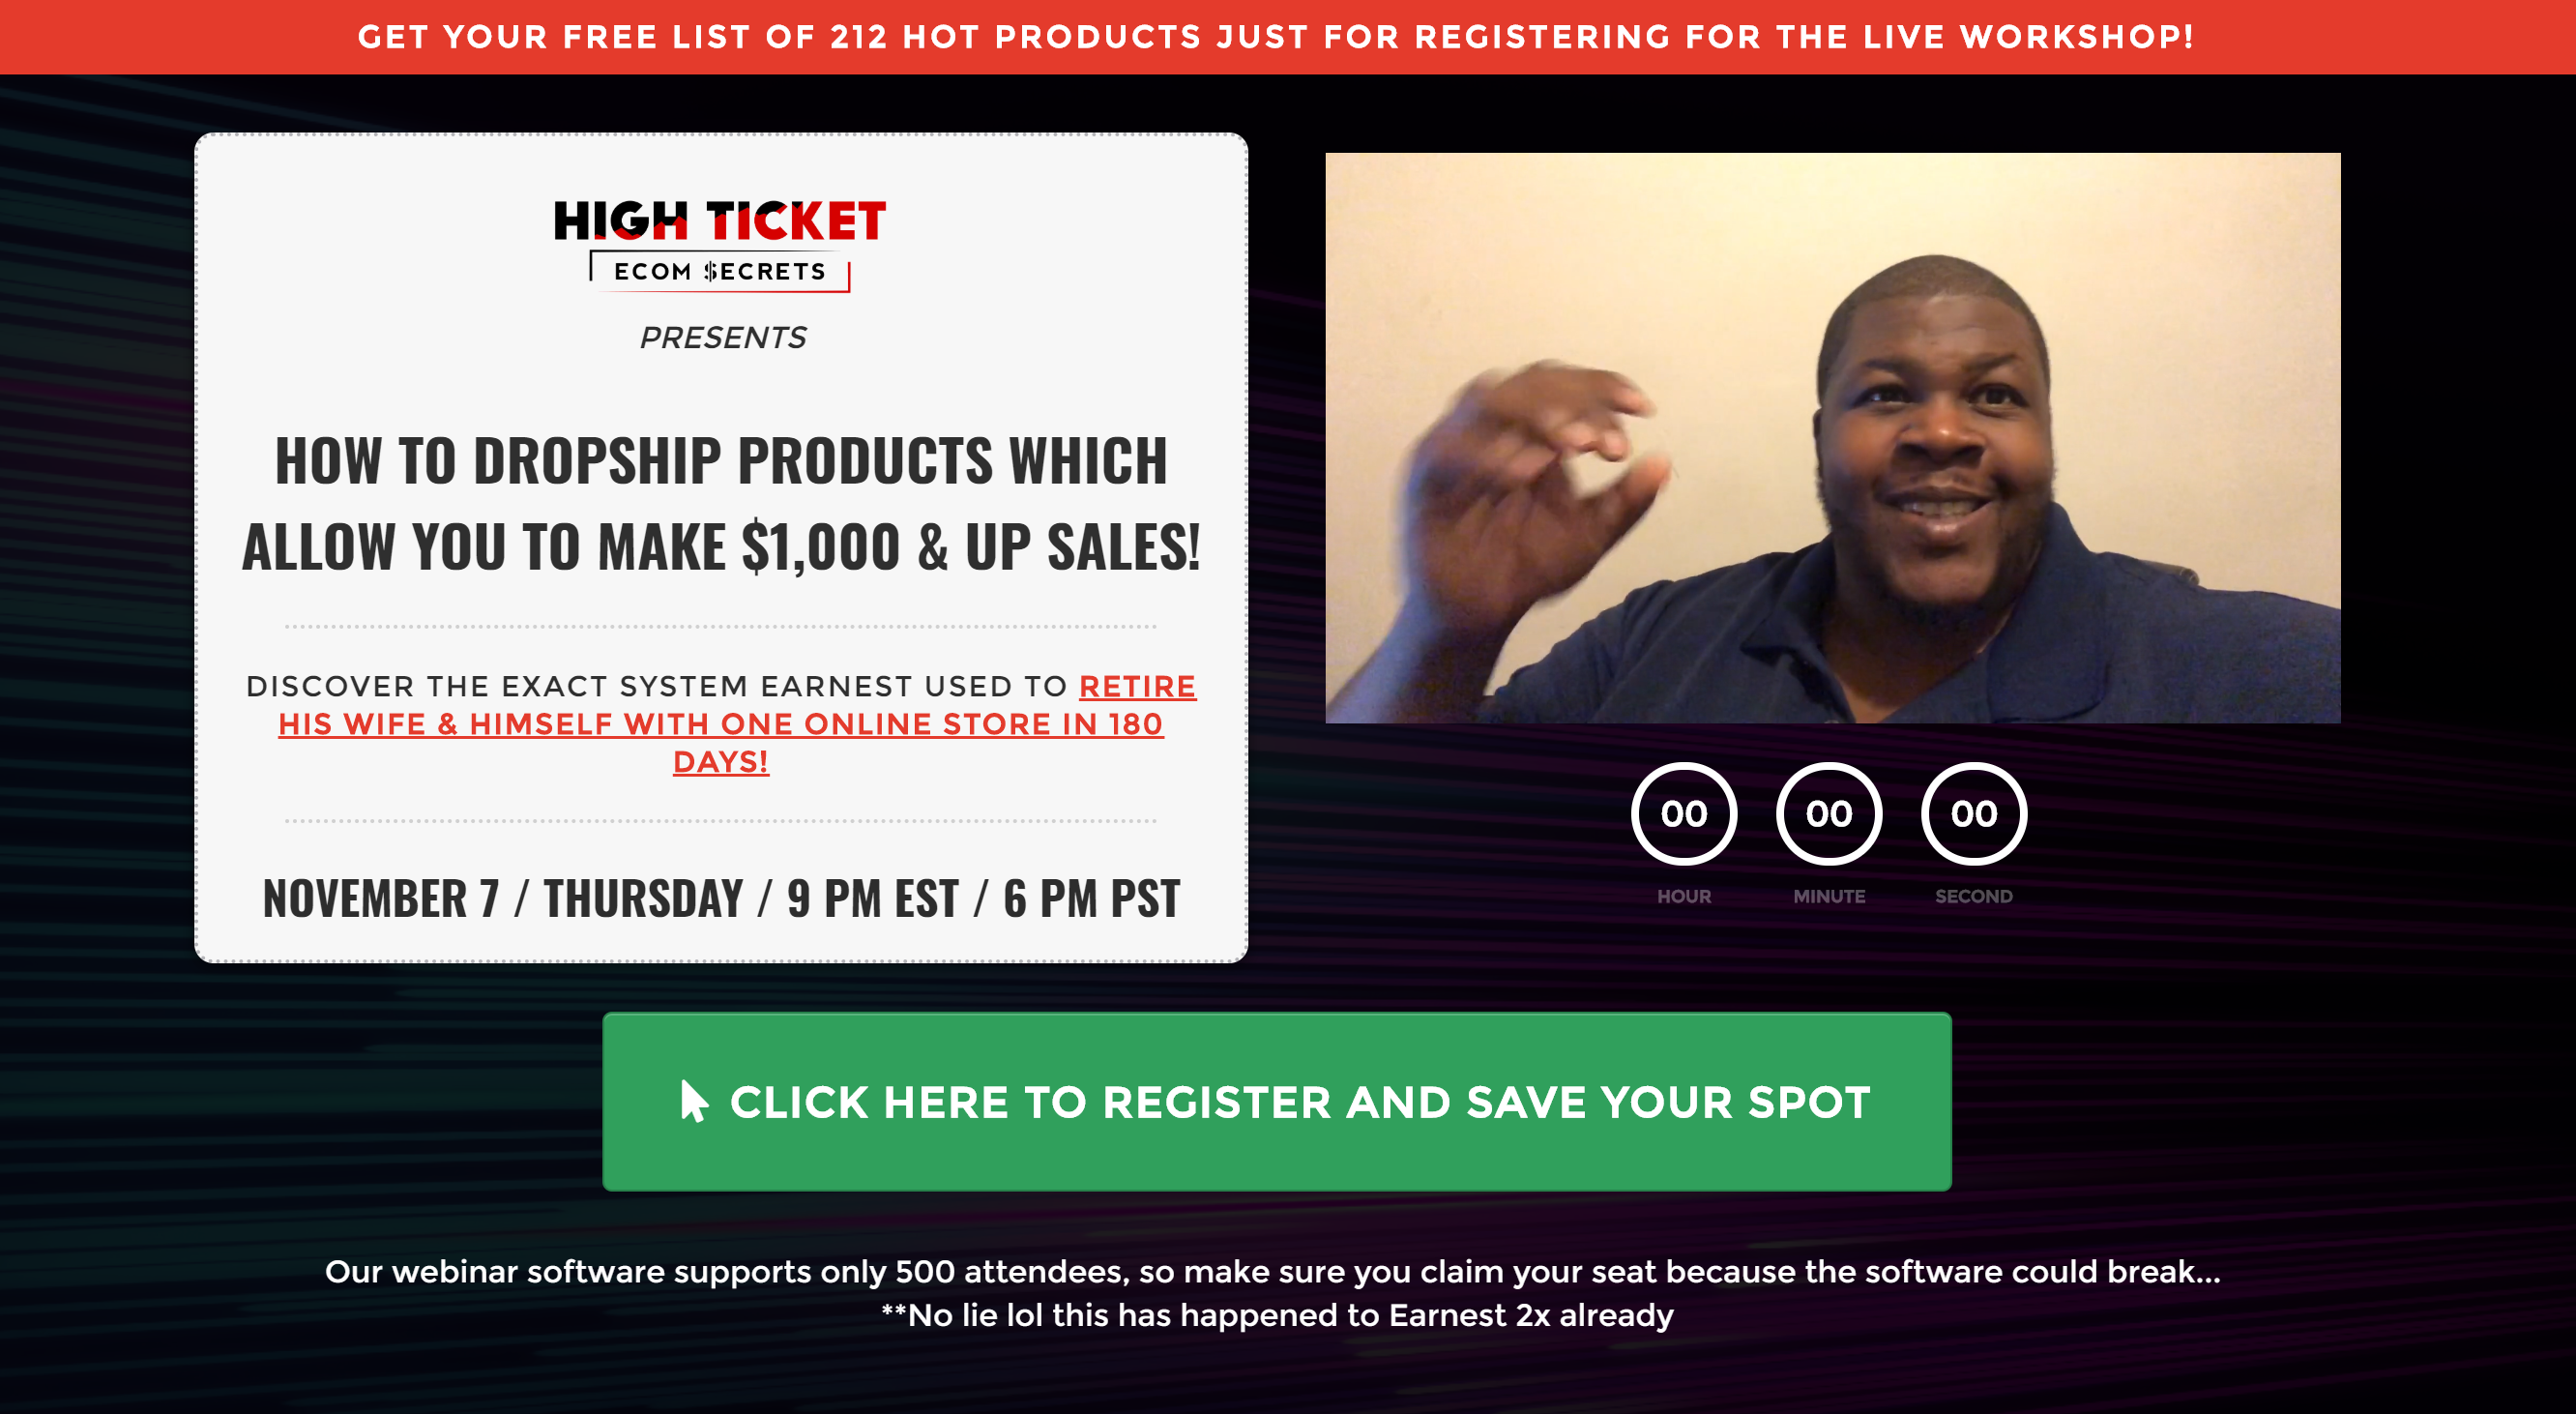 Earnest Epps High ticket dropshipping how to do high ticket dropshipping